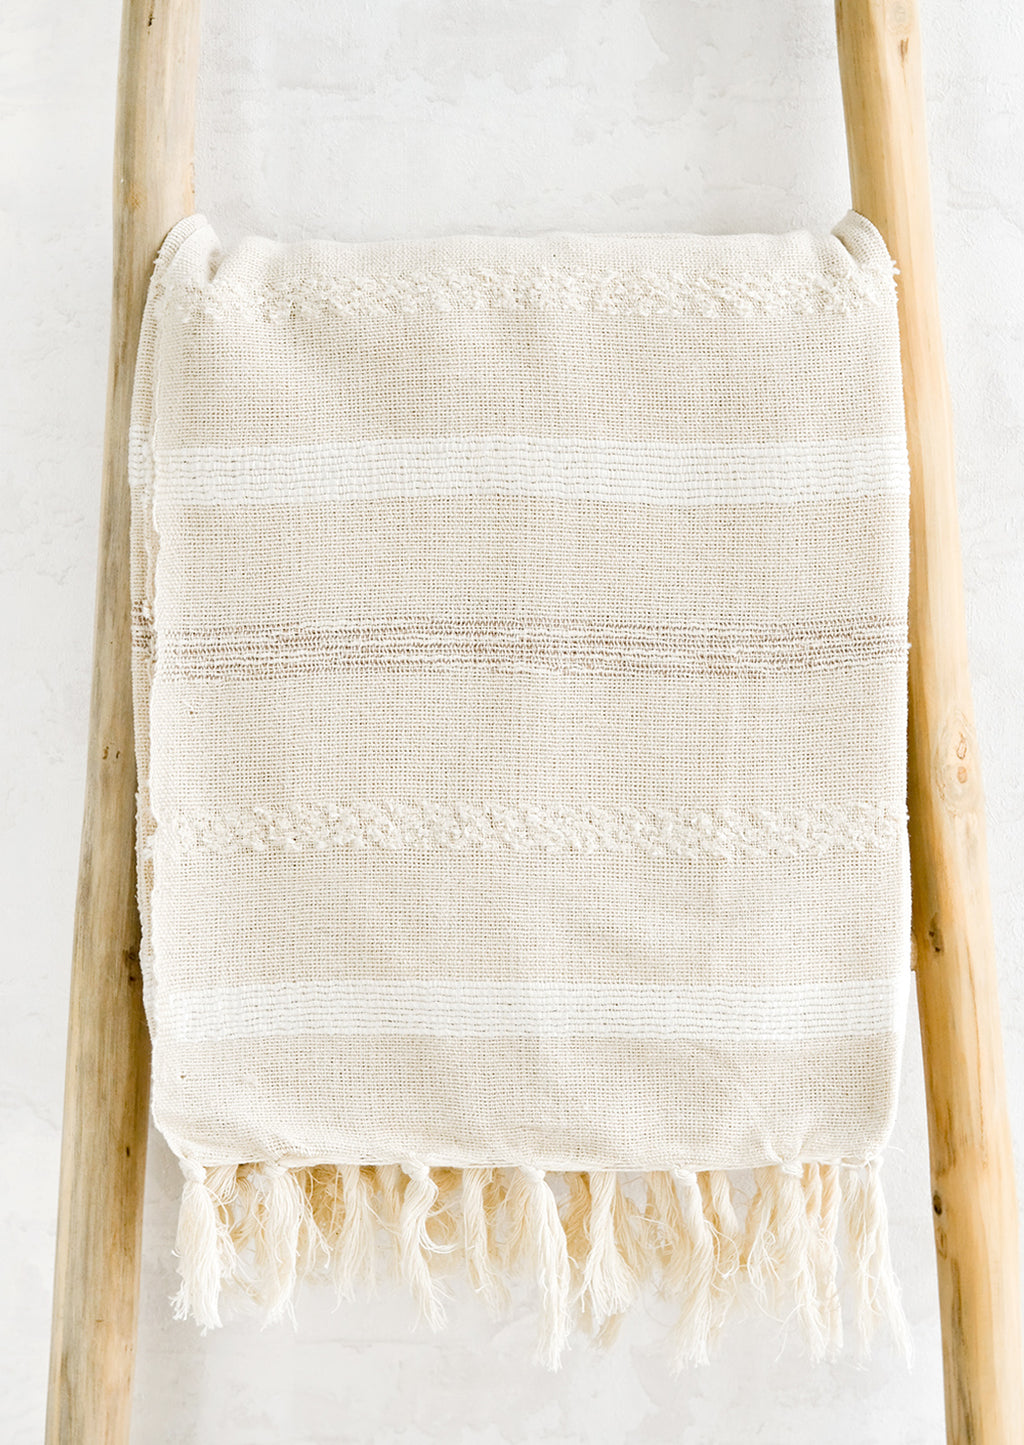 White Multi: A woven cotton gauze blanket with textured stripes in white on a display ladder.